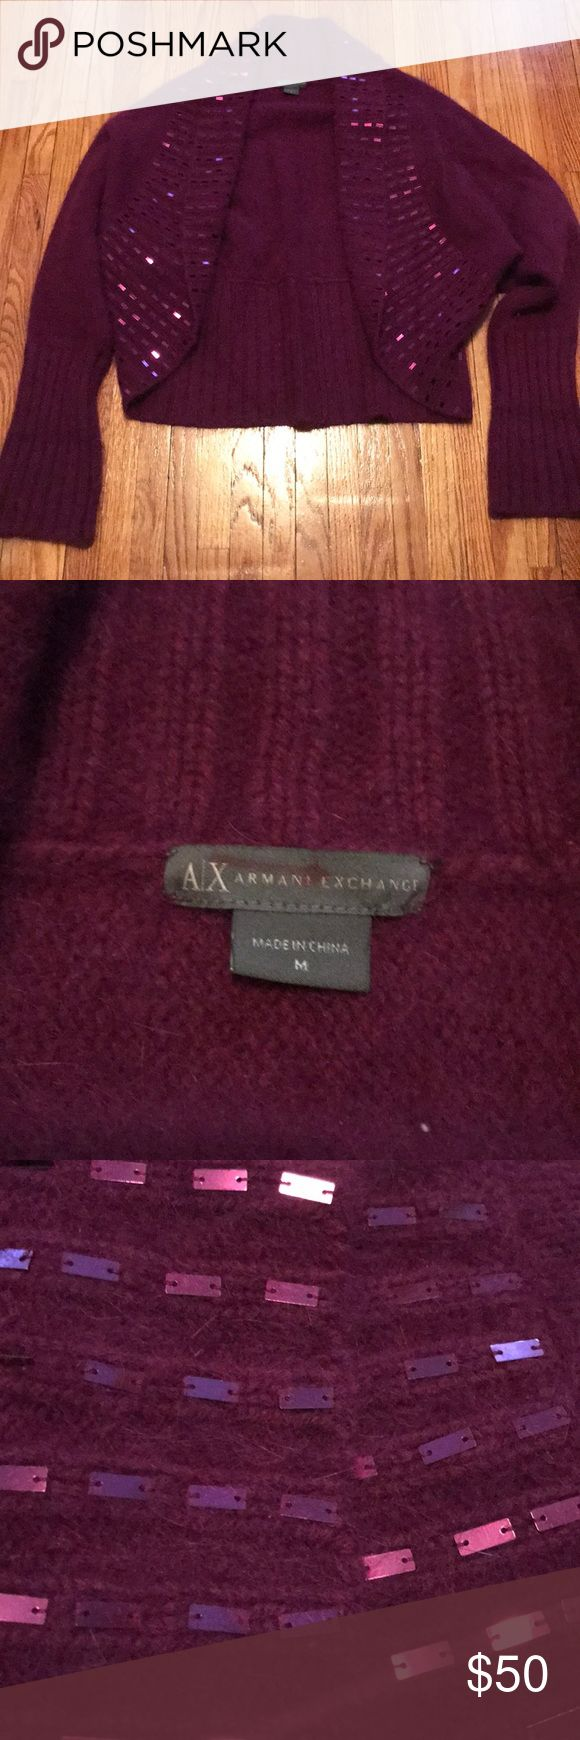 Mulberry Colored Bolero/Sweater Armani Exchange Mulberry colored sweater with sequins. This looks so fantastic on, such a statement! Wear sleeves long or cuffed, either way looks great. One once, excellent condition! Angora rabbit hair and nylon, dry clean only A/X Armani Exchange Sweaters